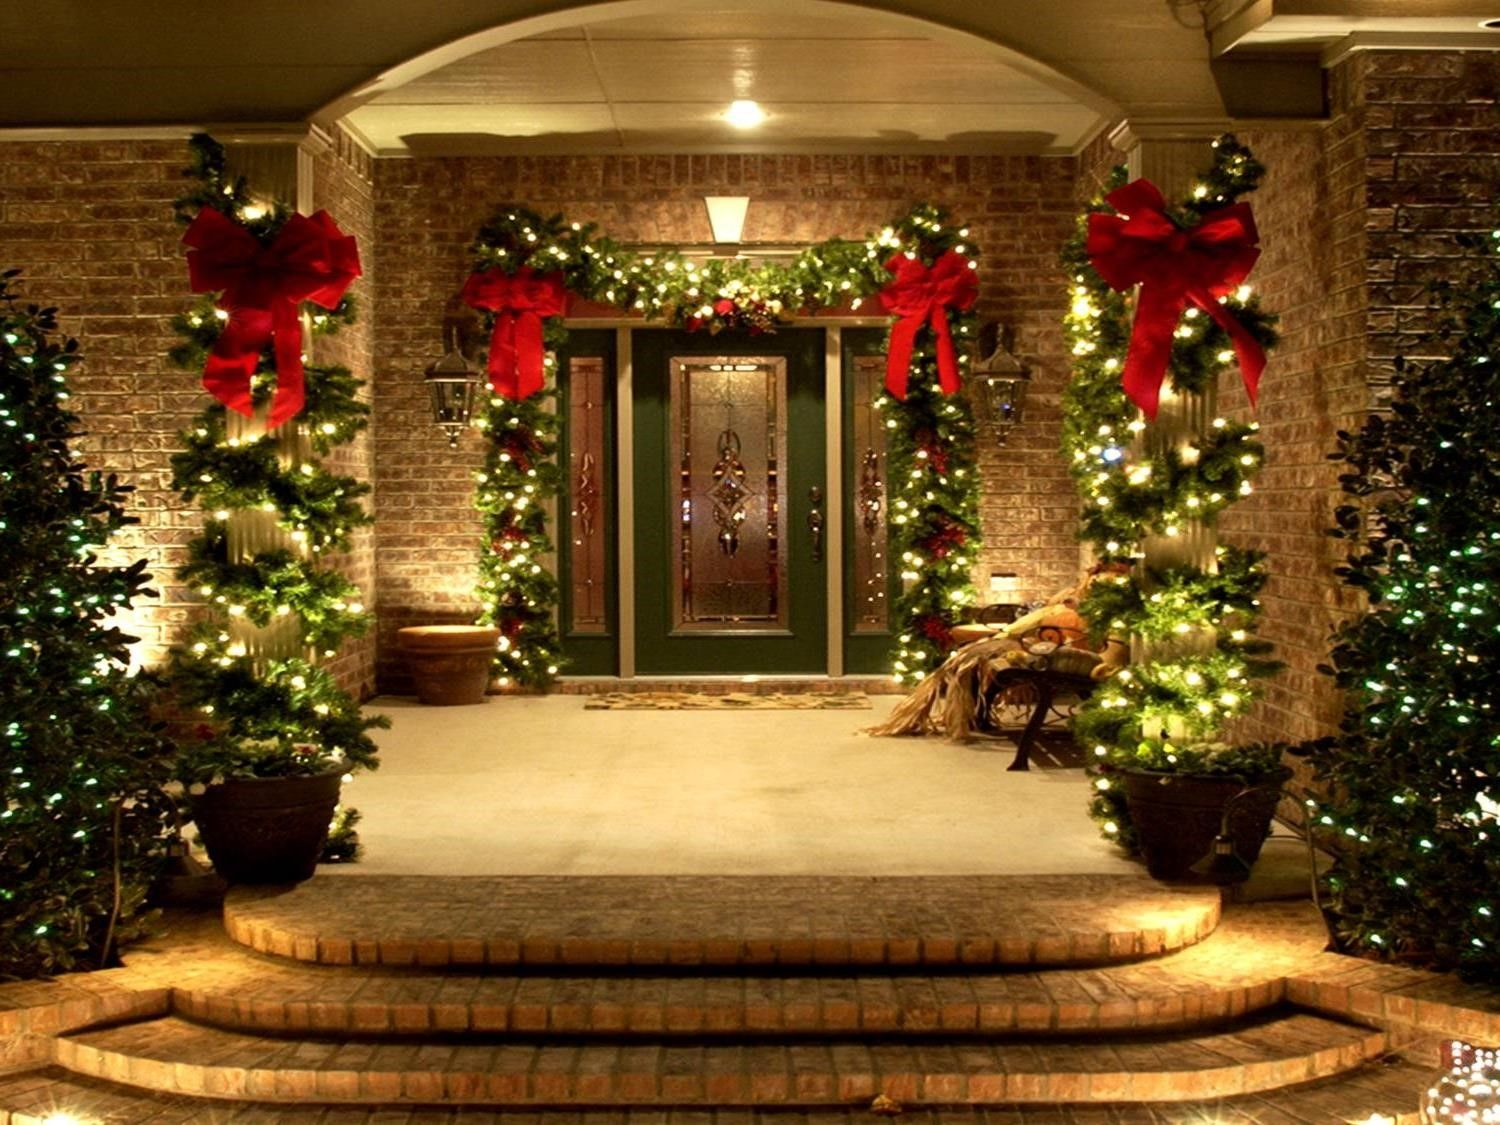 Elegant Outdoor Christmas Decorations Ideas - yurga.net | Christmas ...